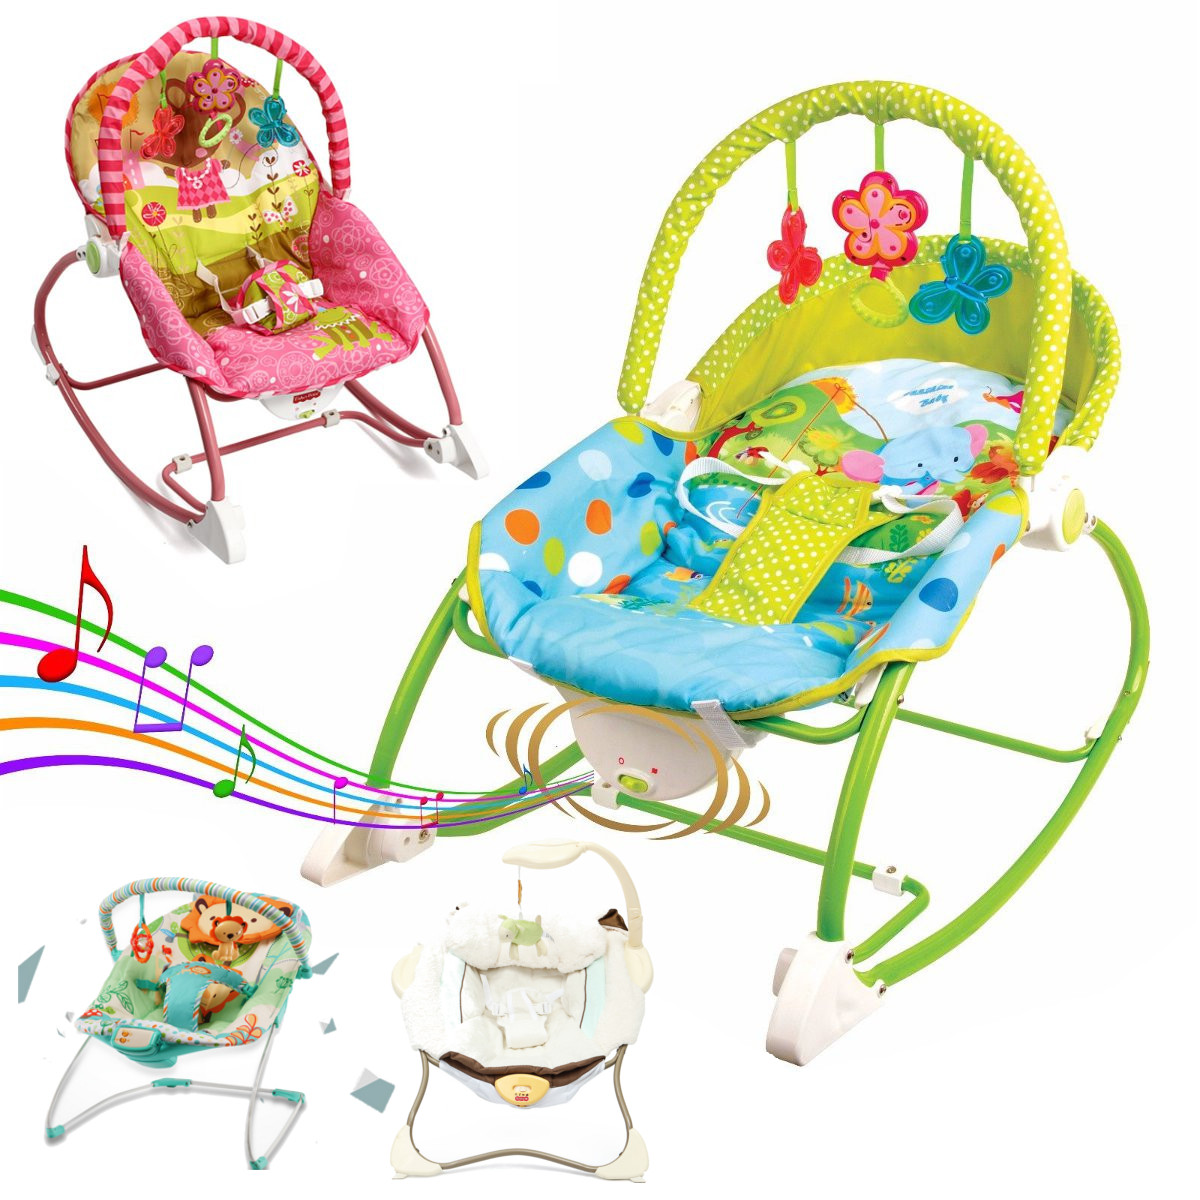 Baby Bouncer Infant Toy Exerciser Entertainer Portable Swing Chair Rocker Seat